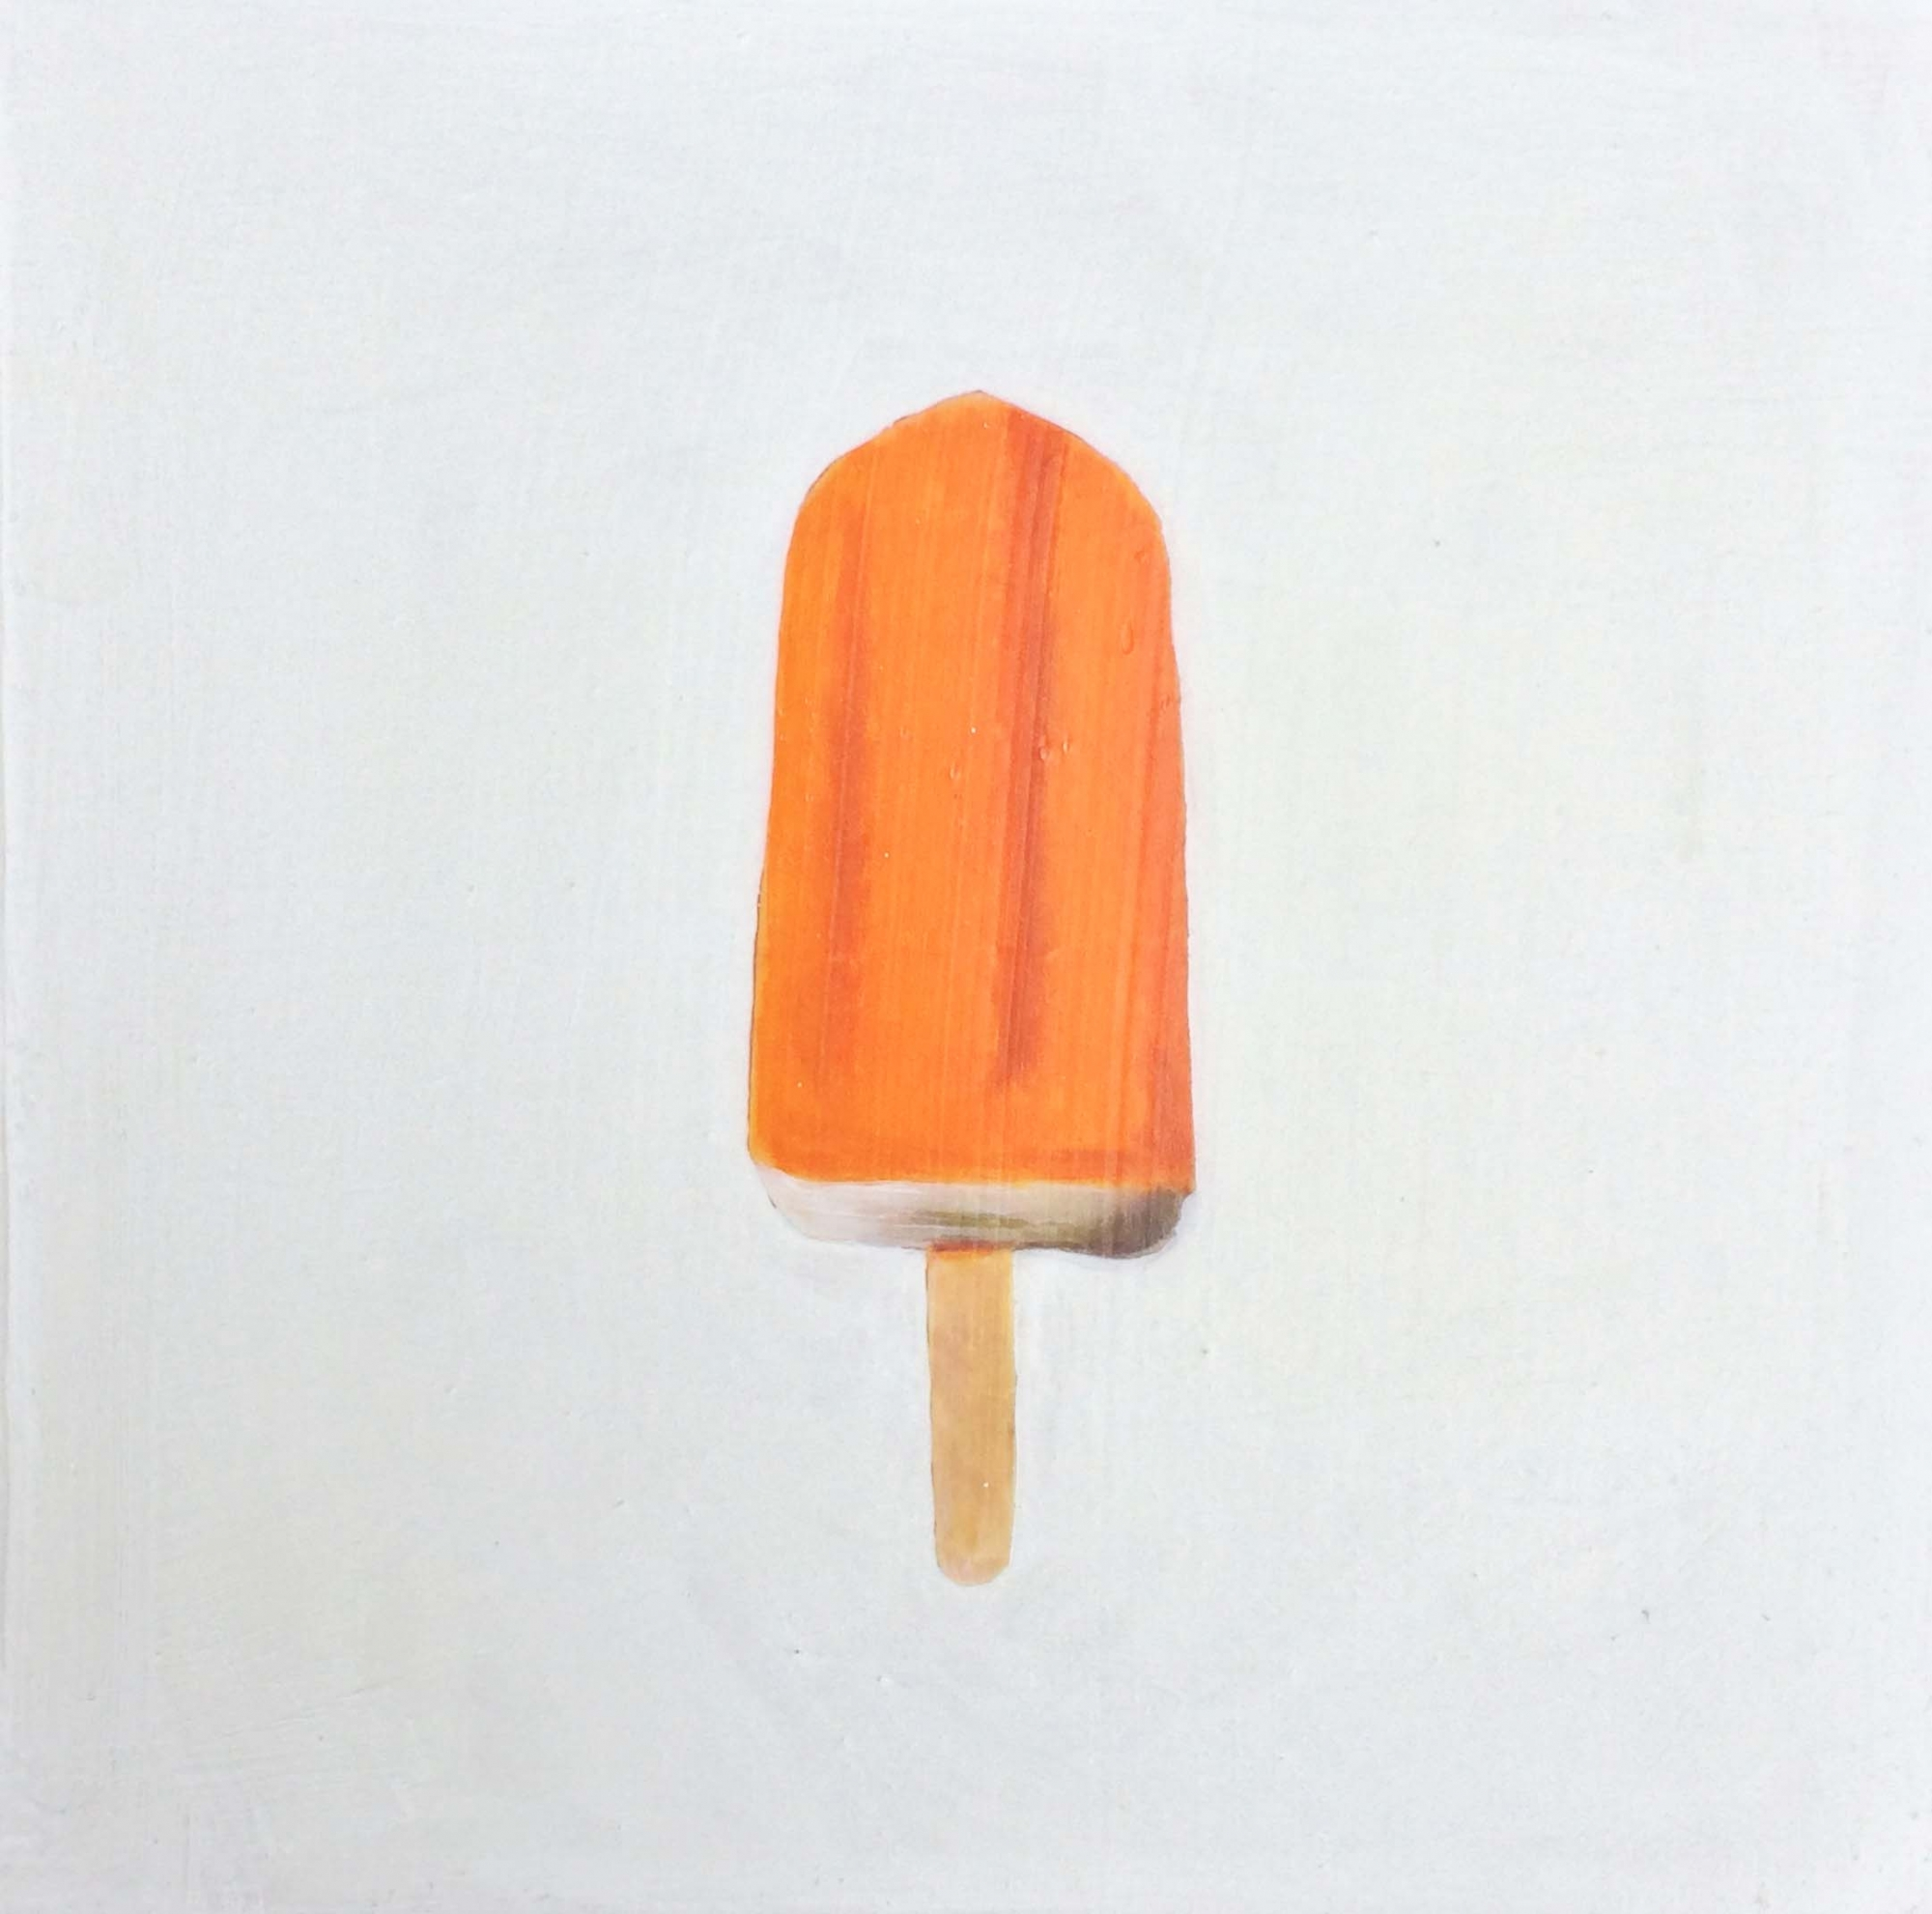 Orange Ice Pop by Erin Vincent